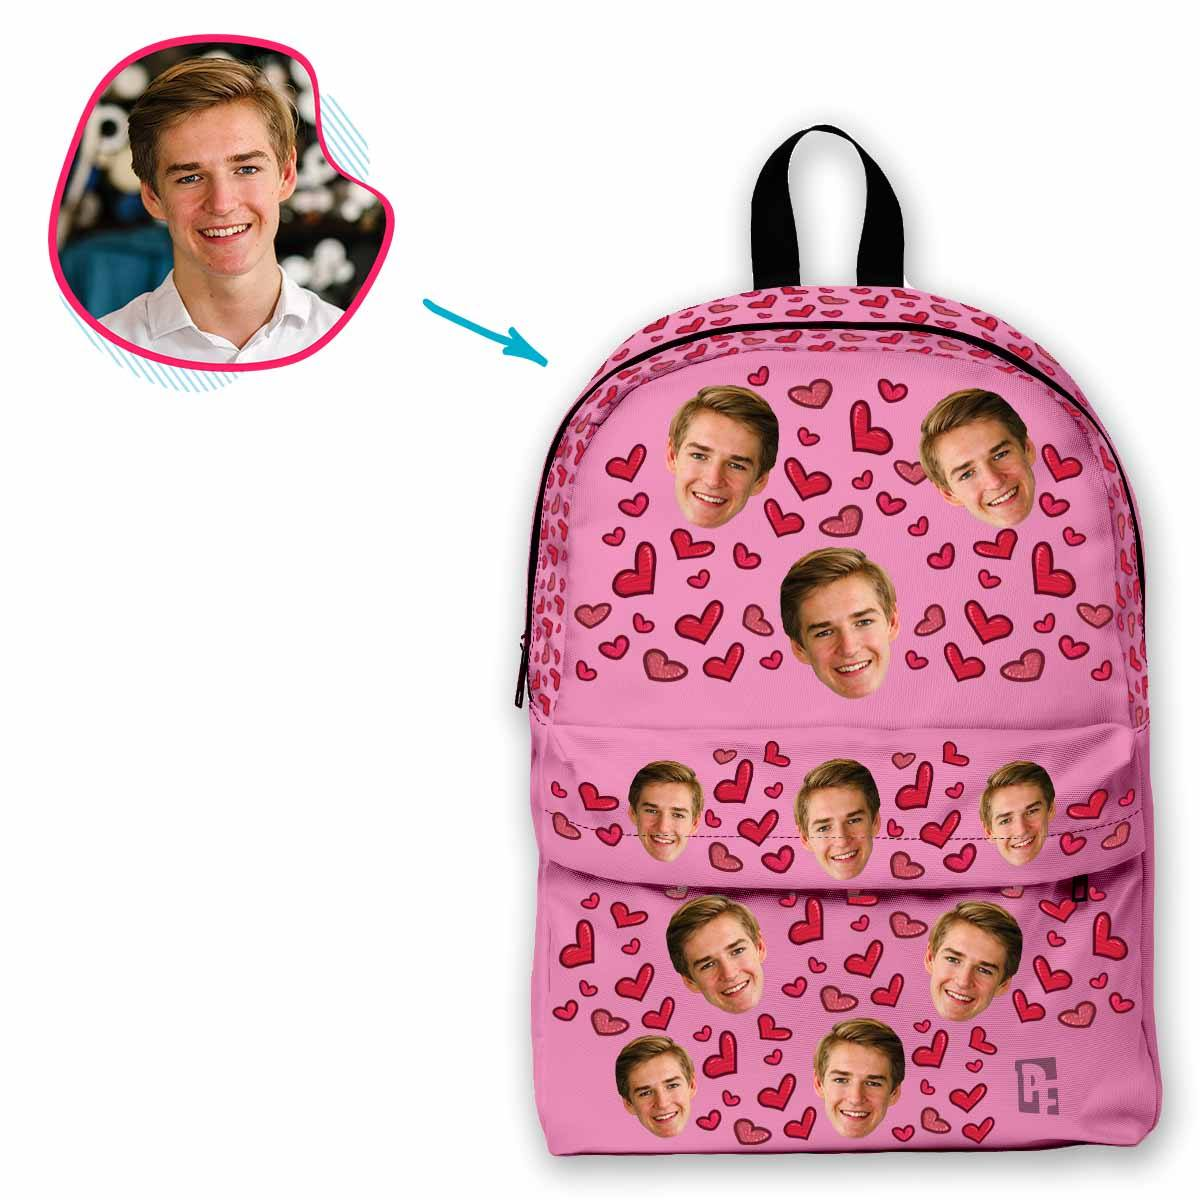 pink Heart classic backpack personalized with photo of face printed on it